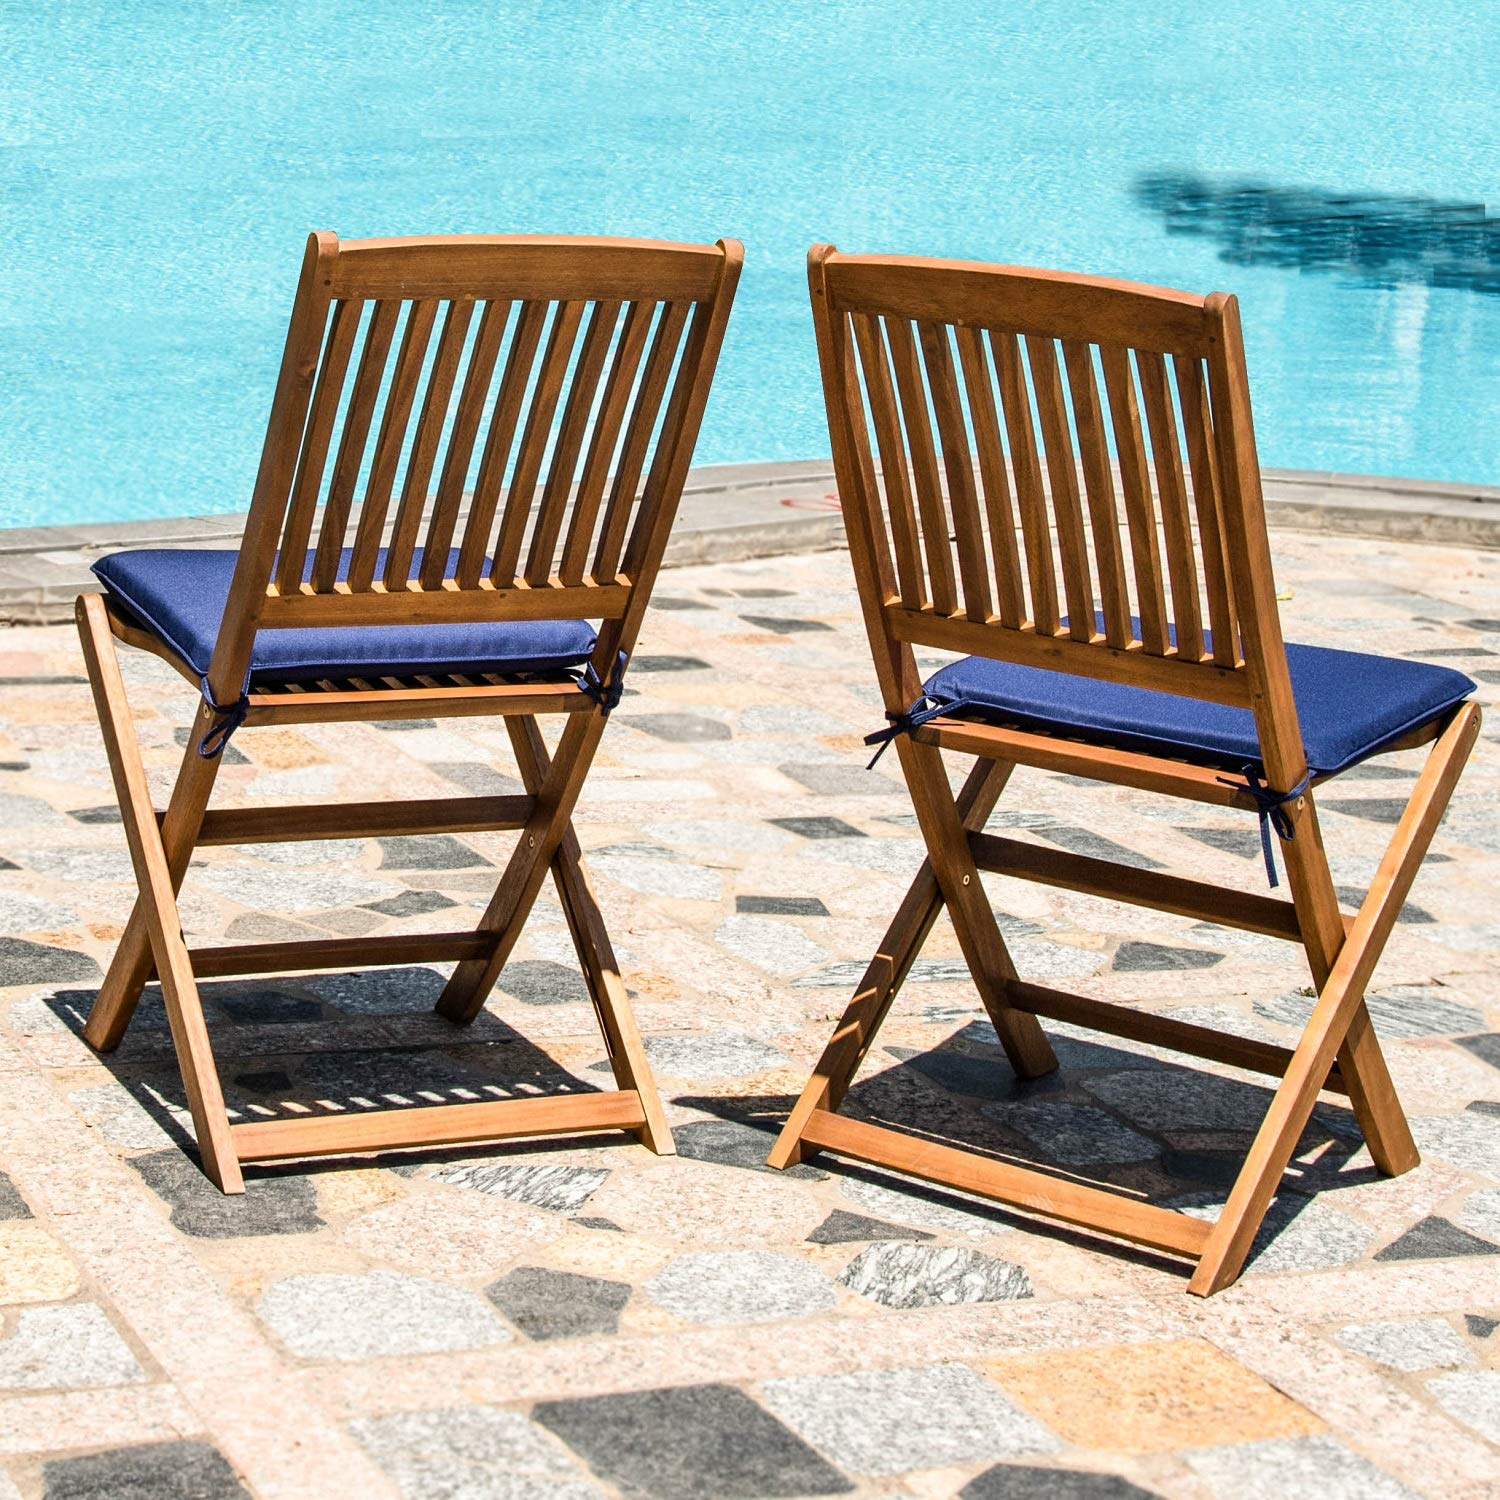 Acacia Wood Indoor Outdoor Patio Foldable Dining Chairs Navy Blue Cushions Patio, Garden, Yard Natural Finish 2 Piece